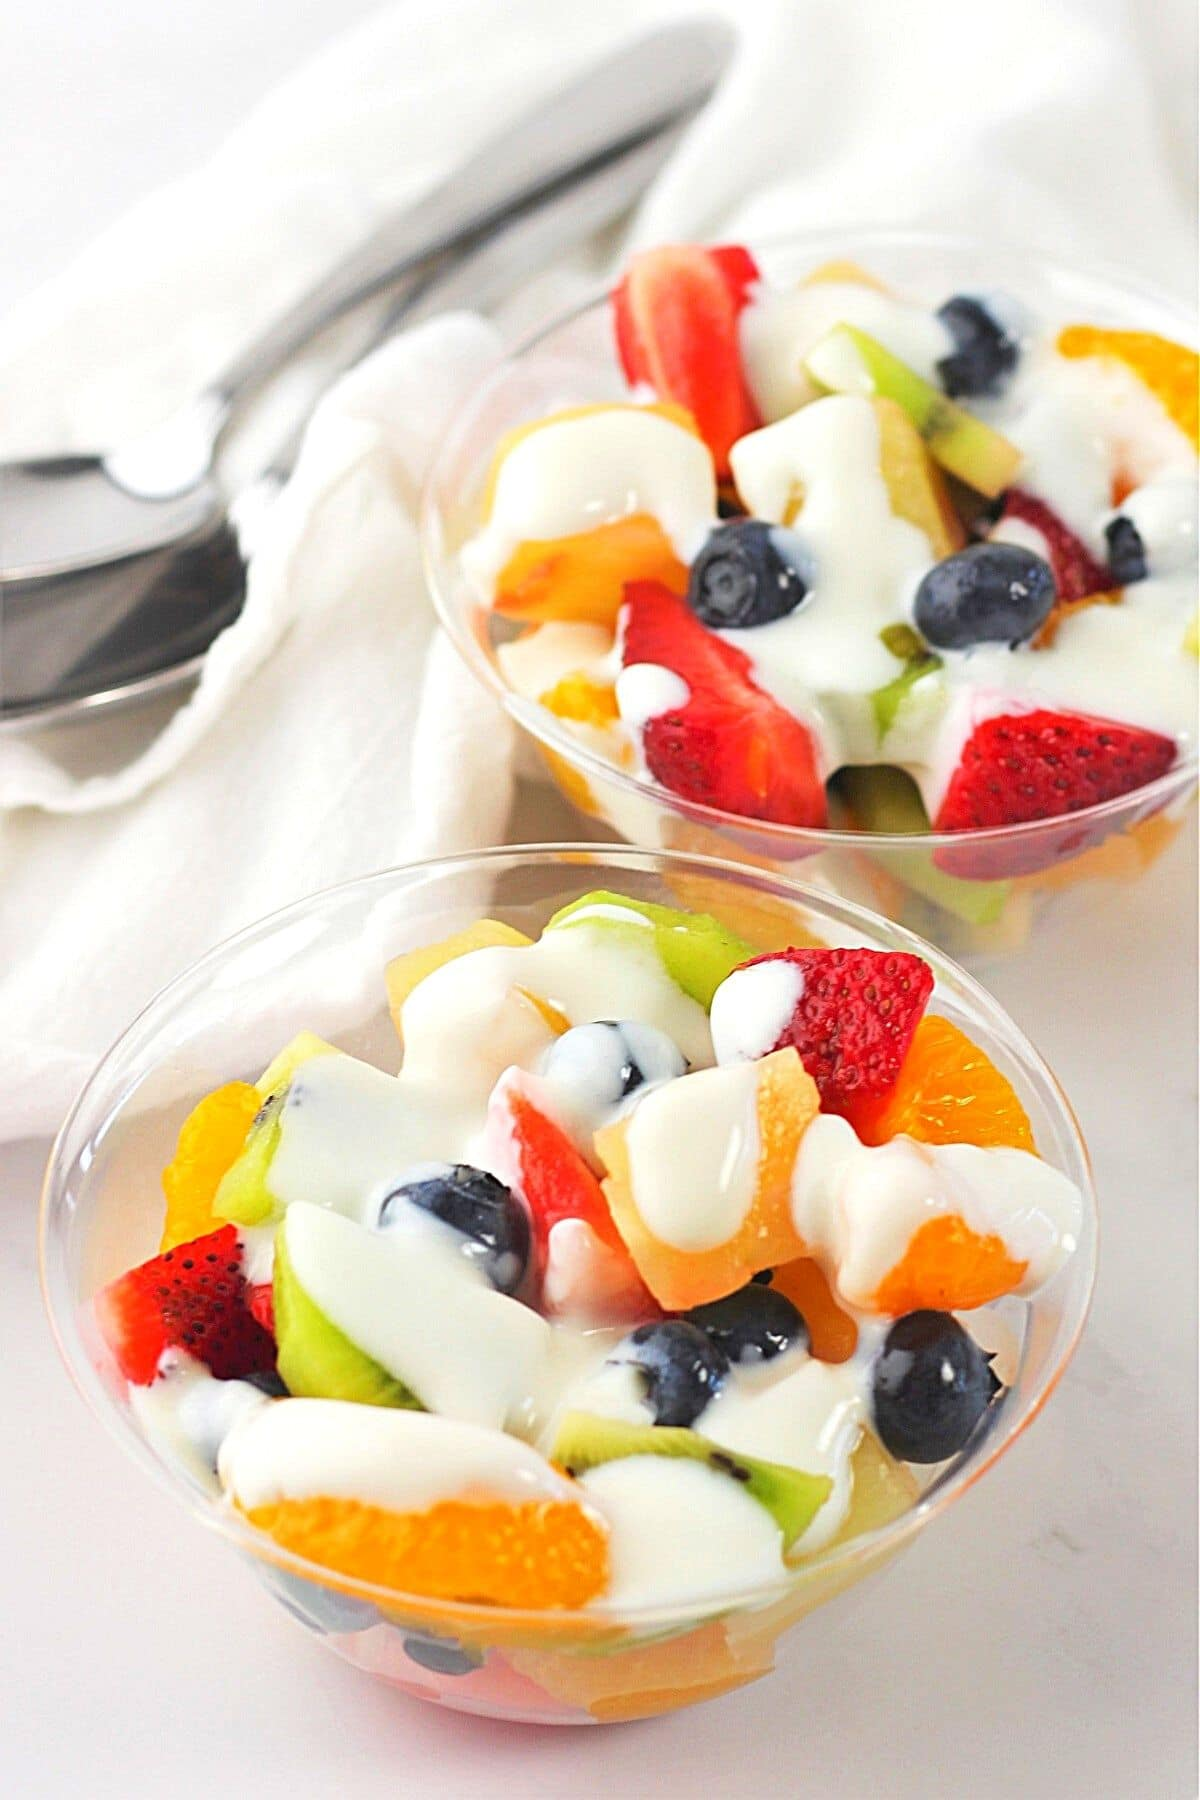 two individual serving bowls of fruit salad, each drizzled with creamy vanilla yogurt dressing, with a napkin and two spoons on the side